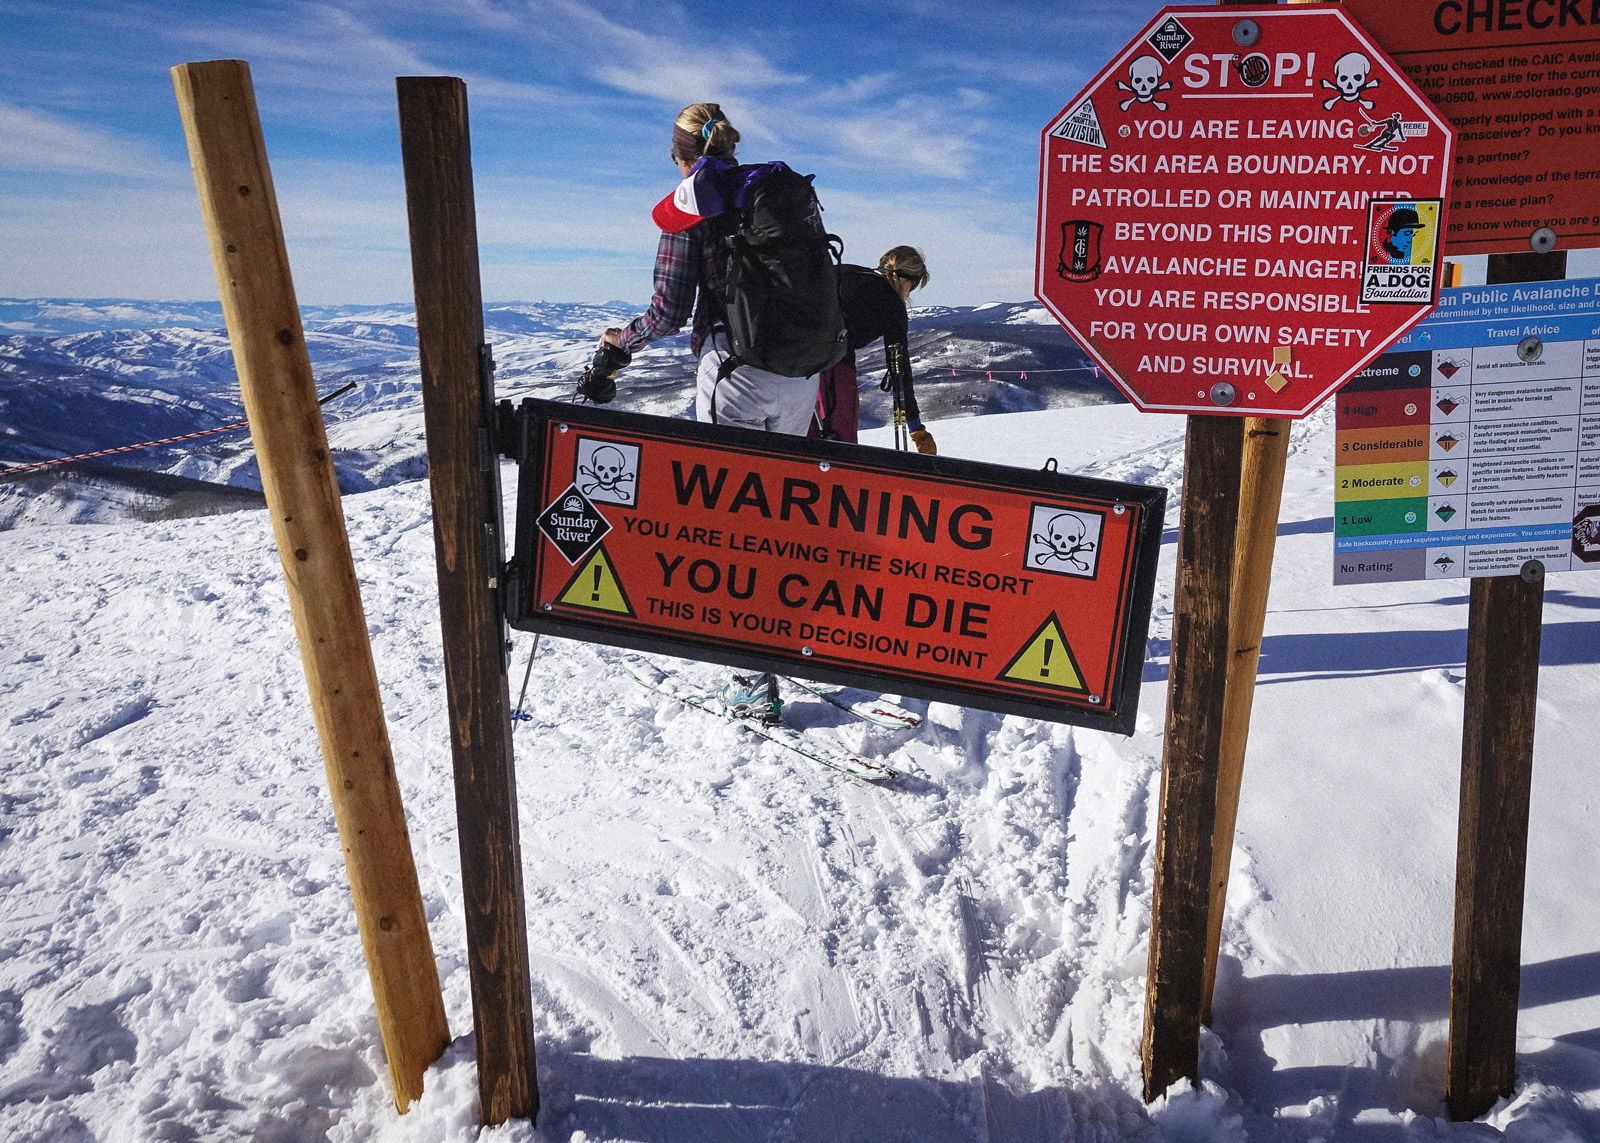 WARNING: You are leaving the ski are boundary. Not patrolled or maintained beyond this point. Avalanche danger! You are responsible for you own safety and survival.